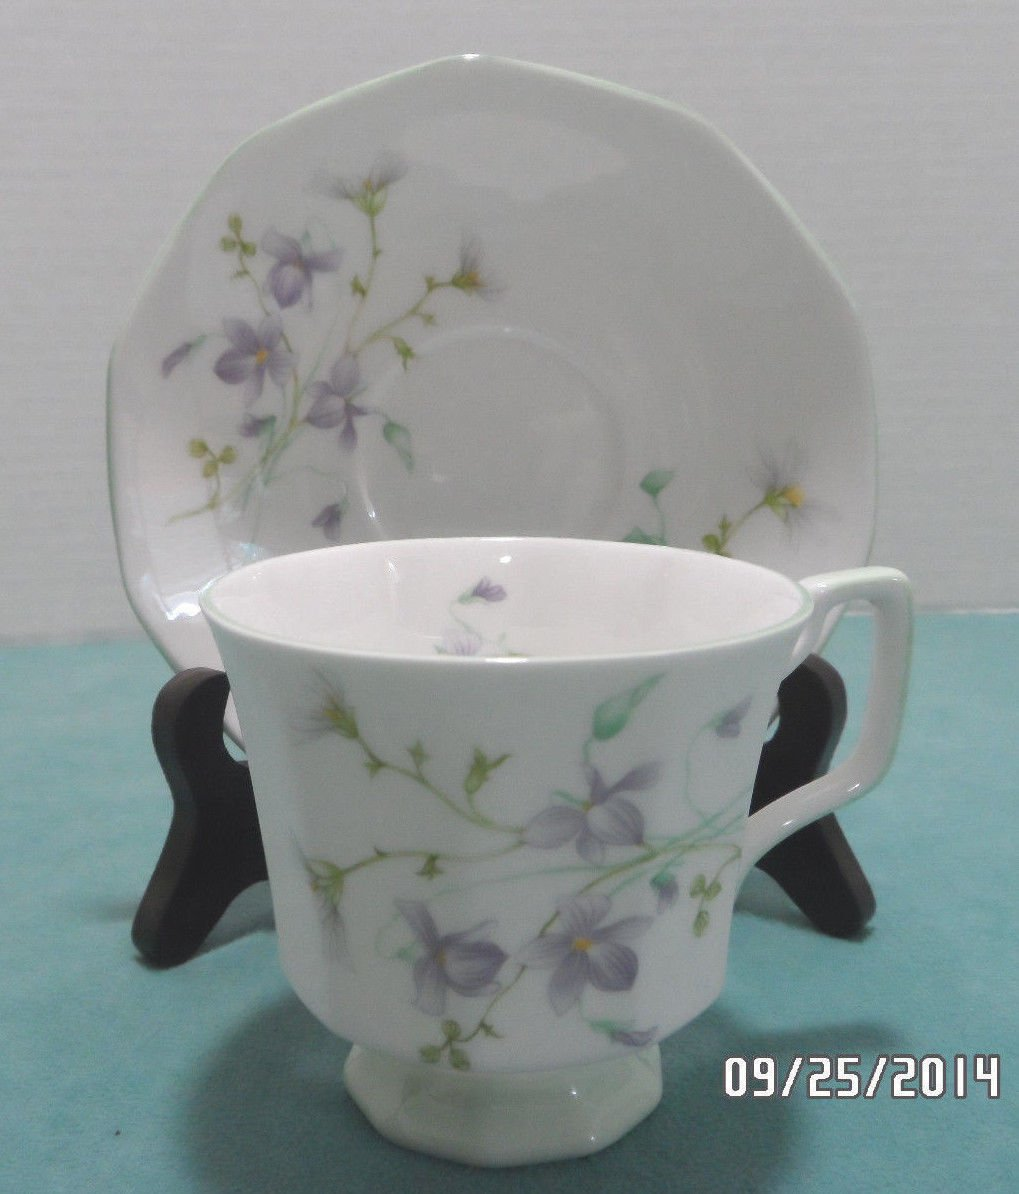 Queens Tea Cup and Saucer Bone China Rosina pattern made in England 1900-1940